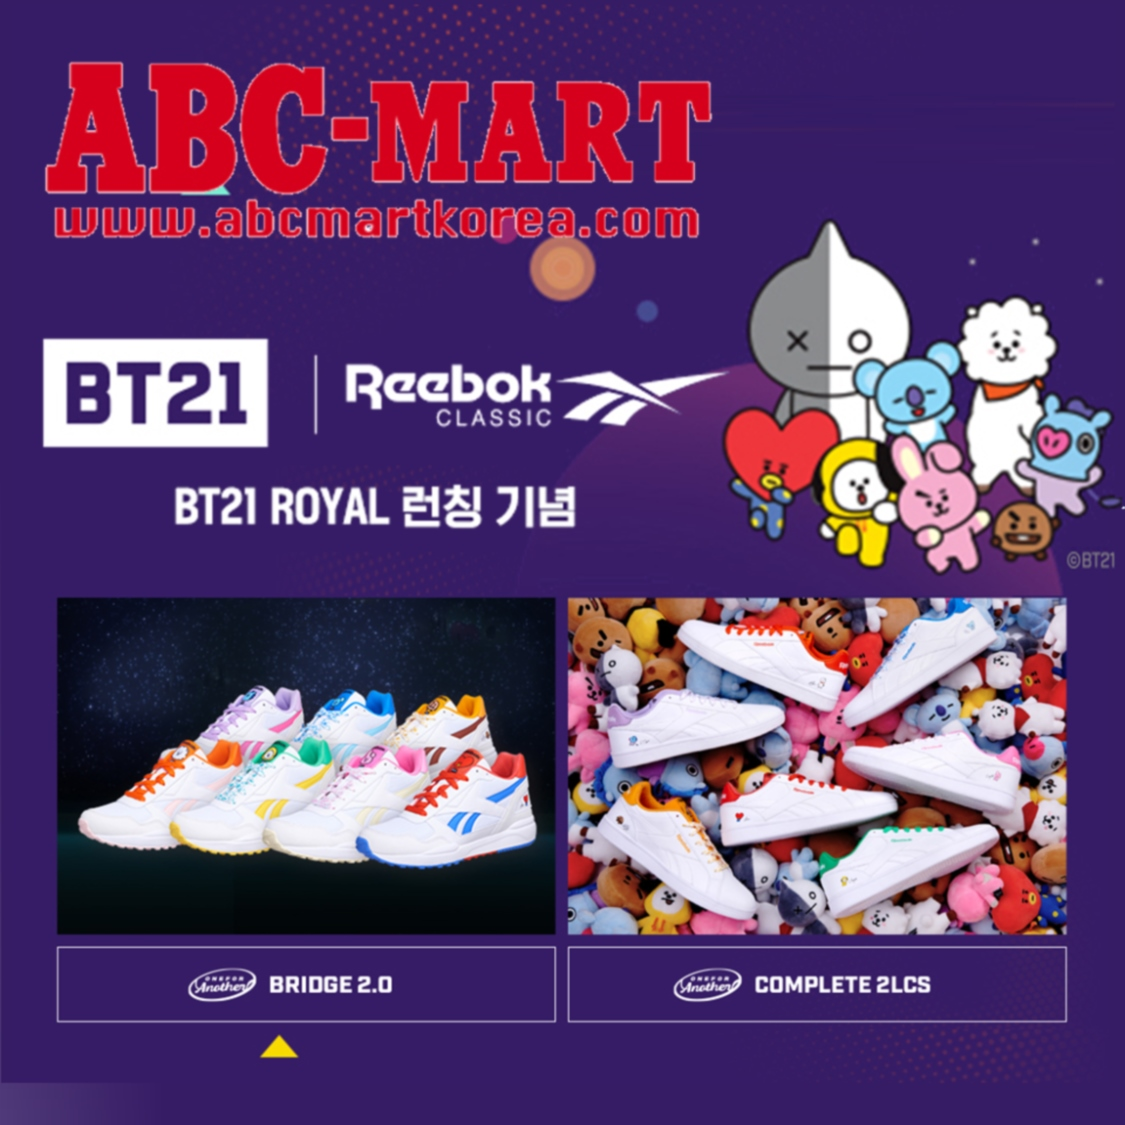 리복 「BT21 ROYAL」 런칭